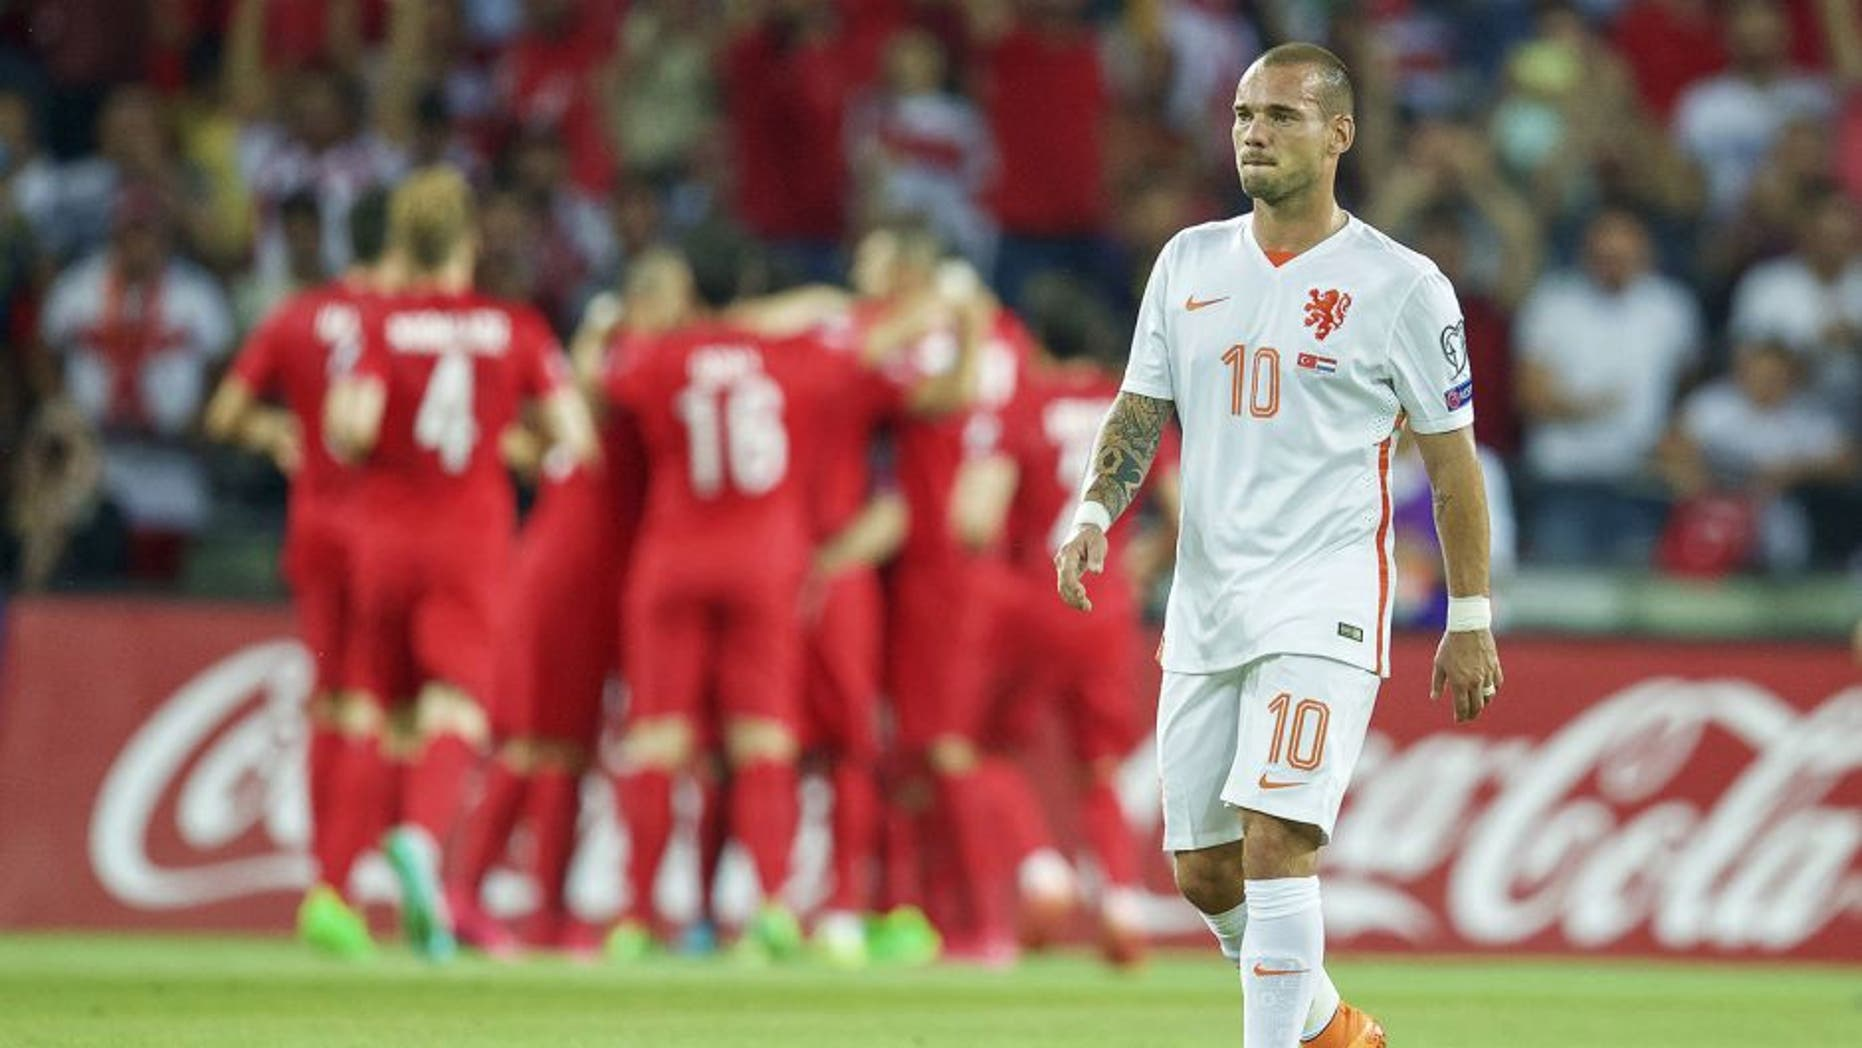 Wesley Sneijderof Holland during the UEFA Euro 2016 qualifying match between Turkey and Netherlands on September 6, 2015 at the Konya Büyüksehir Torku Arena in Konya, Turkey(Photo by VI Images via Getty Images)